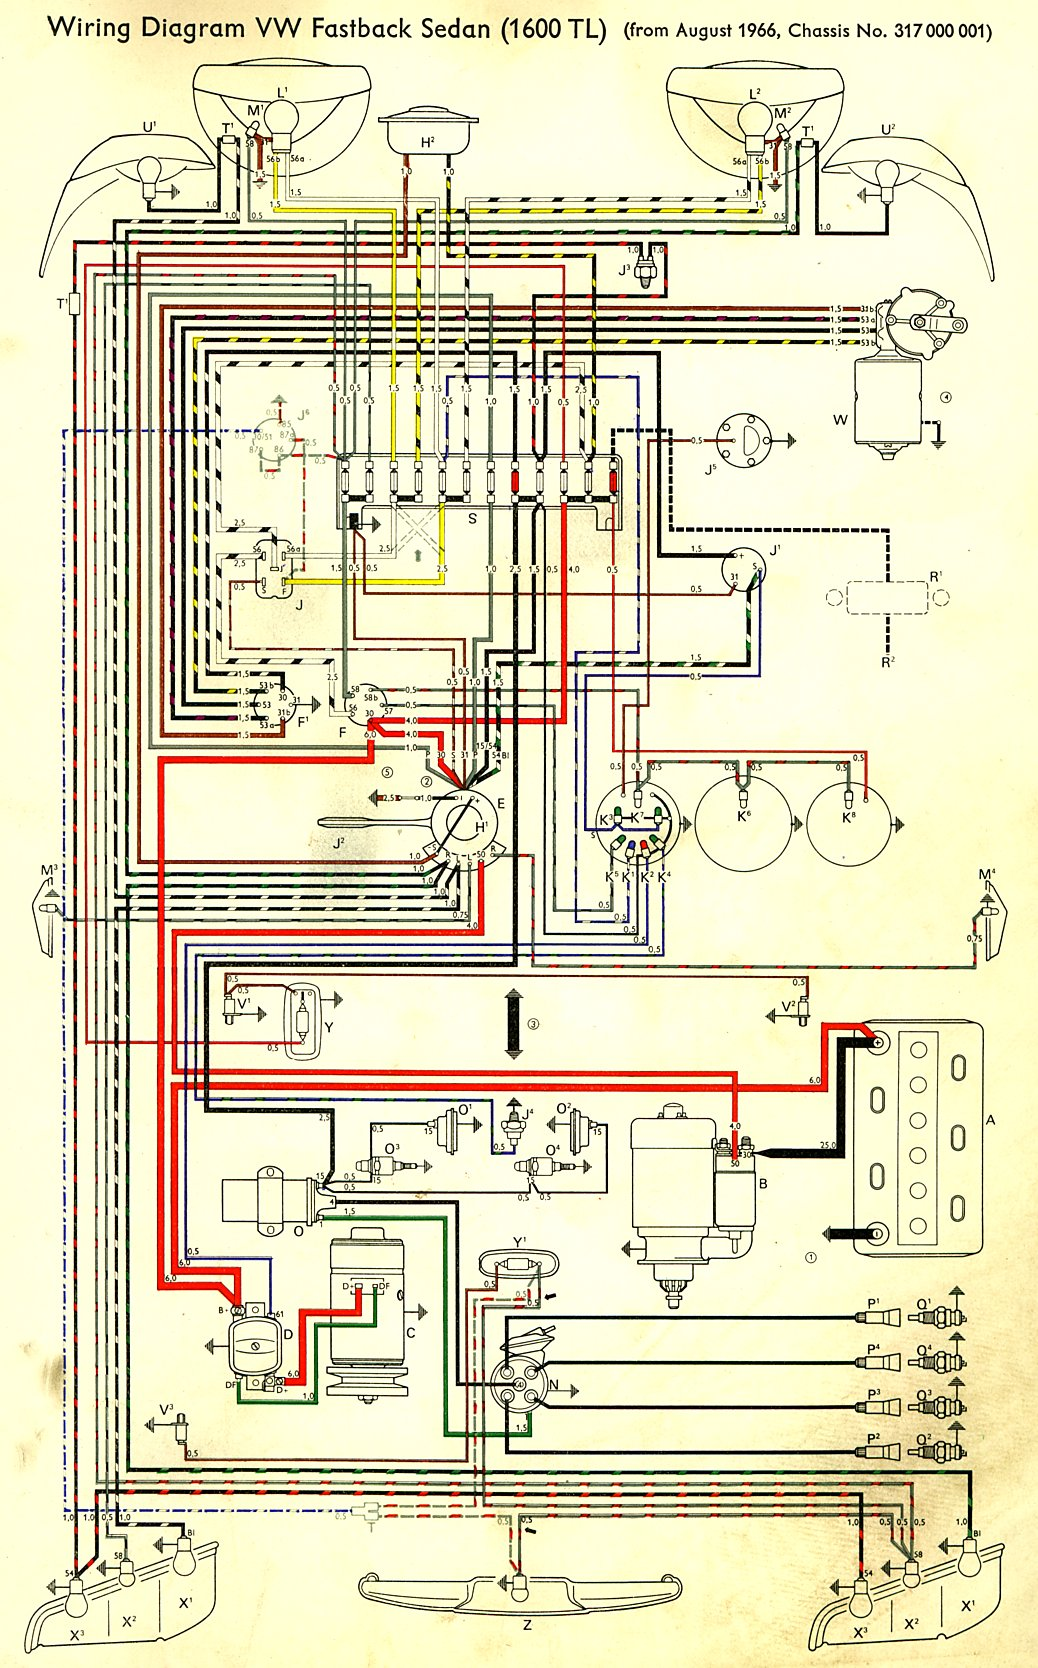 type3_1600TL_67 vw bus wiring diagram 1965 vw bus wiring diagram \u2022 wiring diagrams 1971 vw beetle wiring diagram at virtualis.co